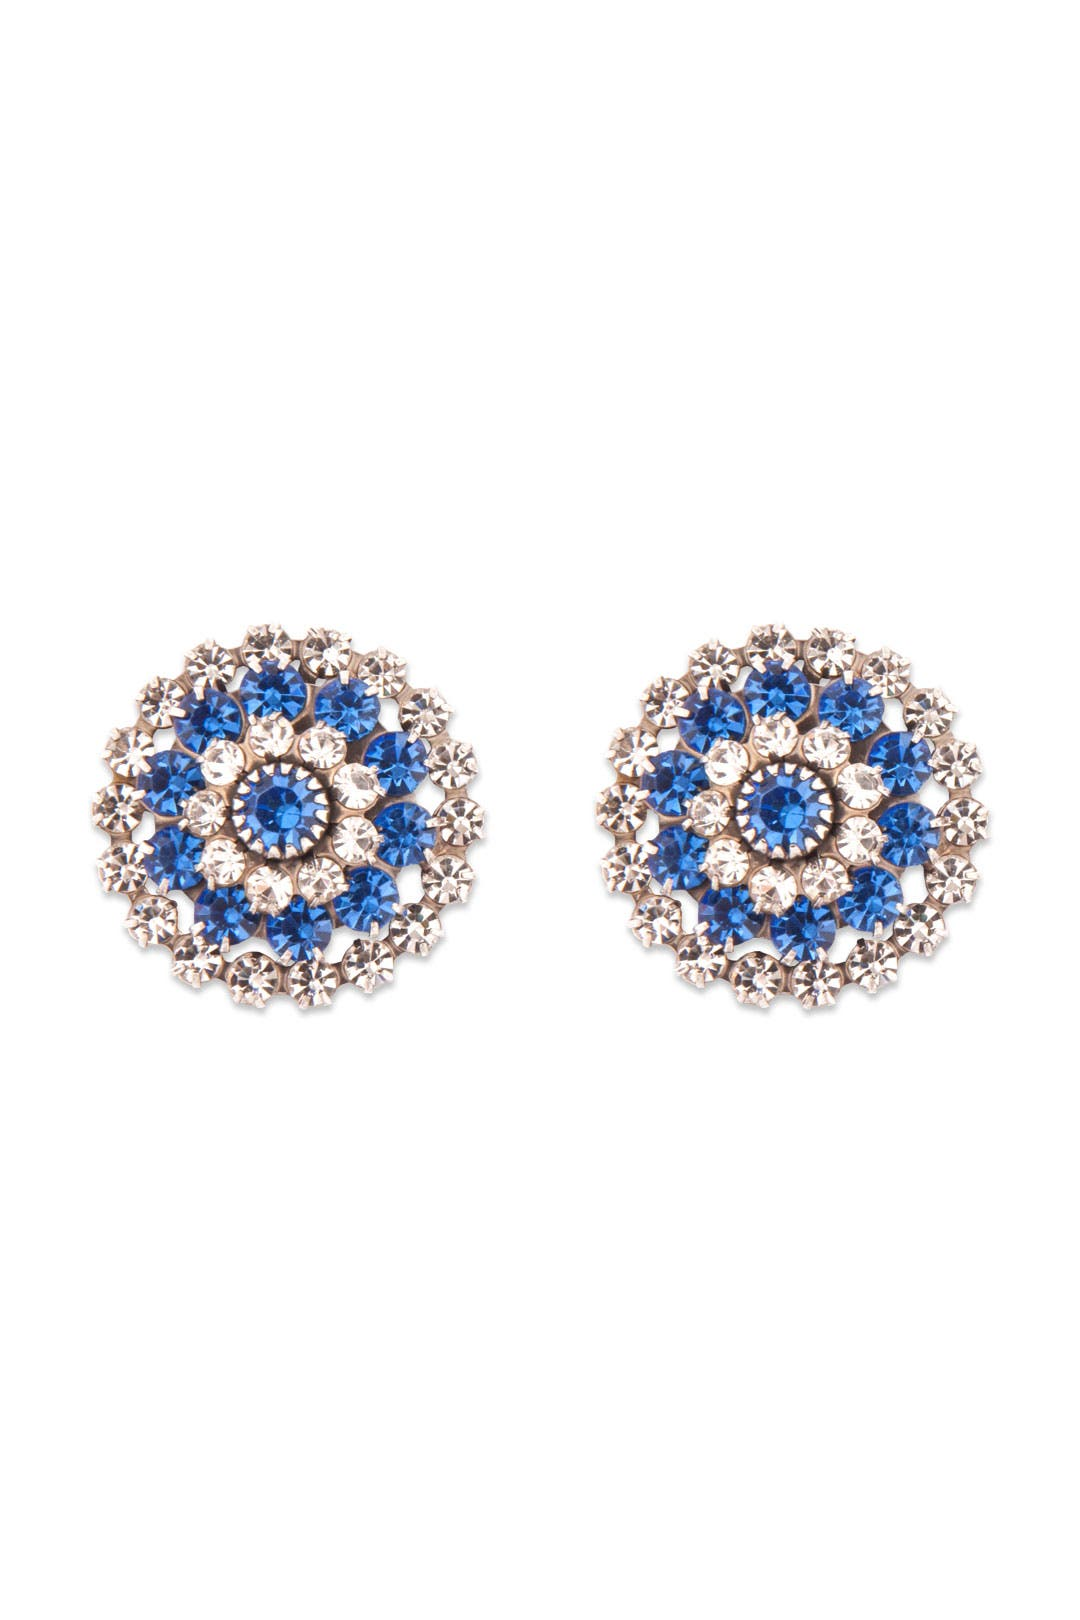 Crystalized Blue Mum Earrings by Janis Savitt